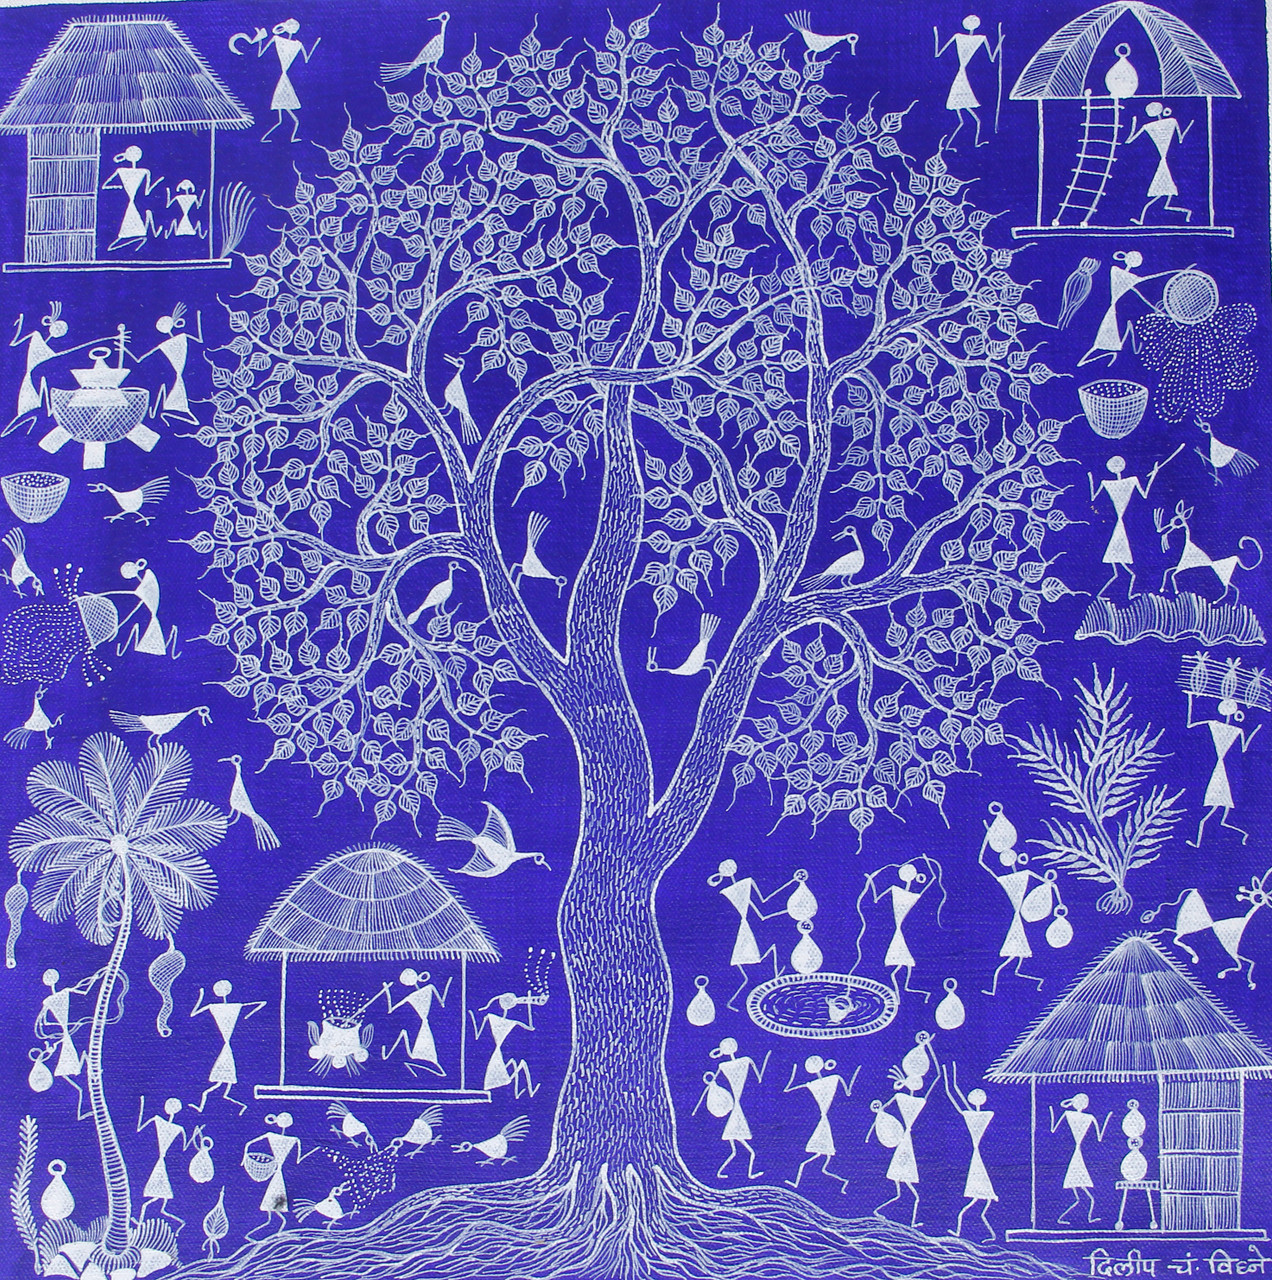 Buy Tribal Warli Painting Indian Traditional Painting Tribal Lifestyle Handmade Painting By Anavita Artistry Studios Private Limited Code Art 7213 45169 Paintings For Sale Online In India